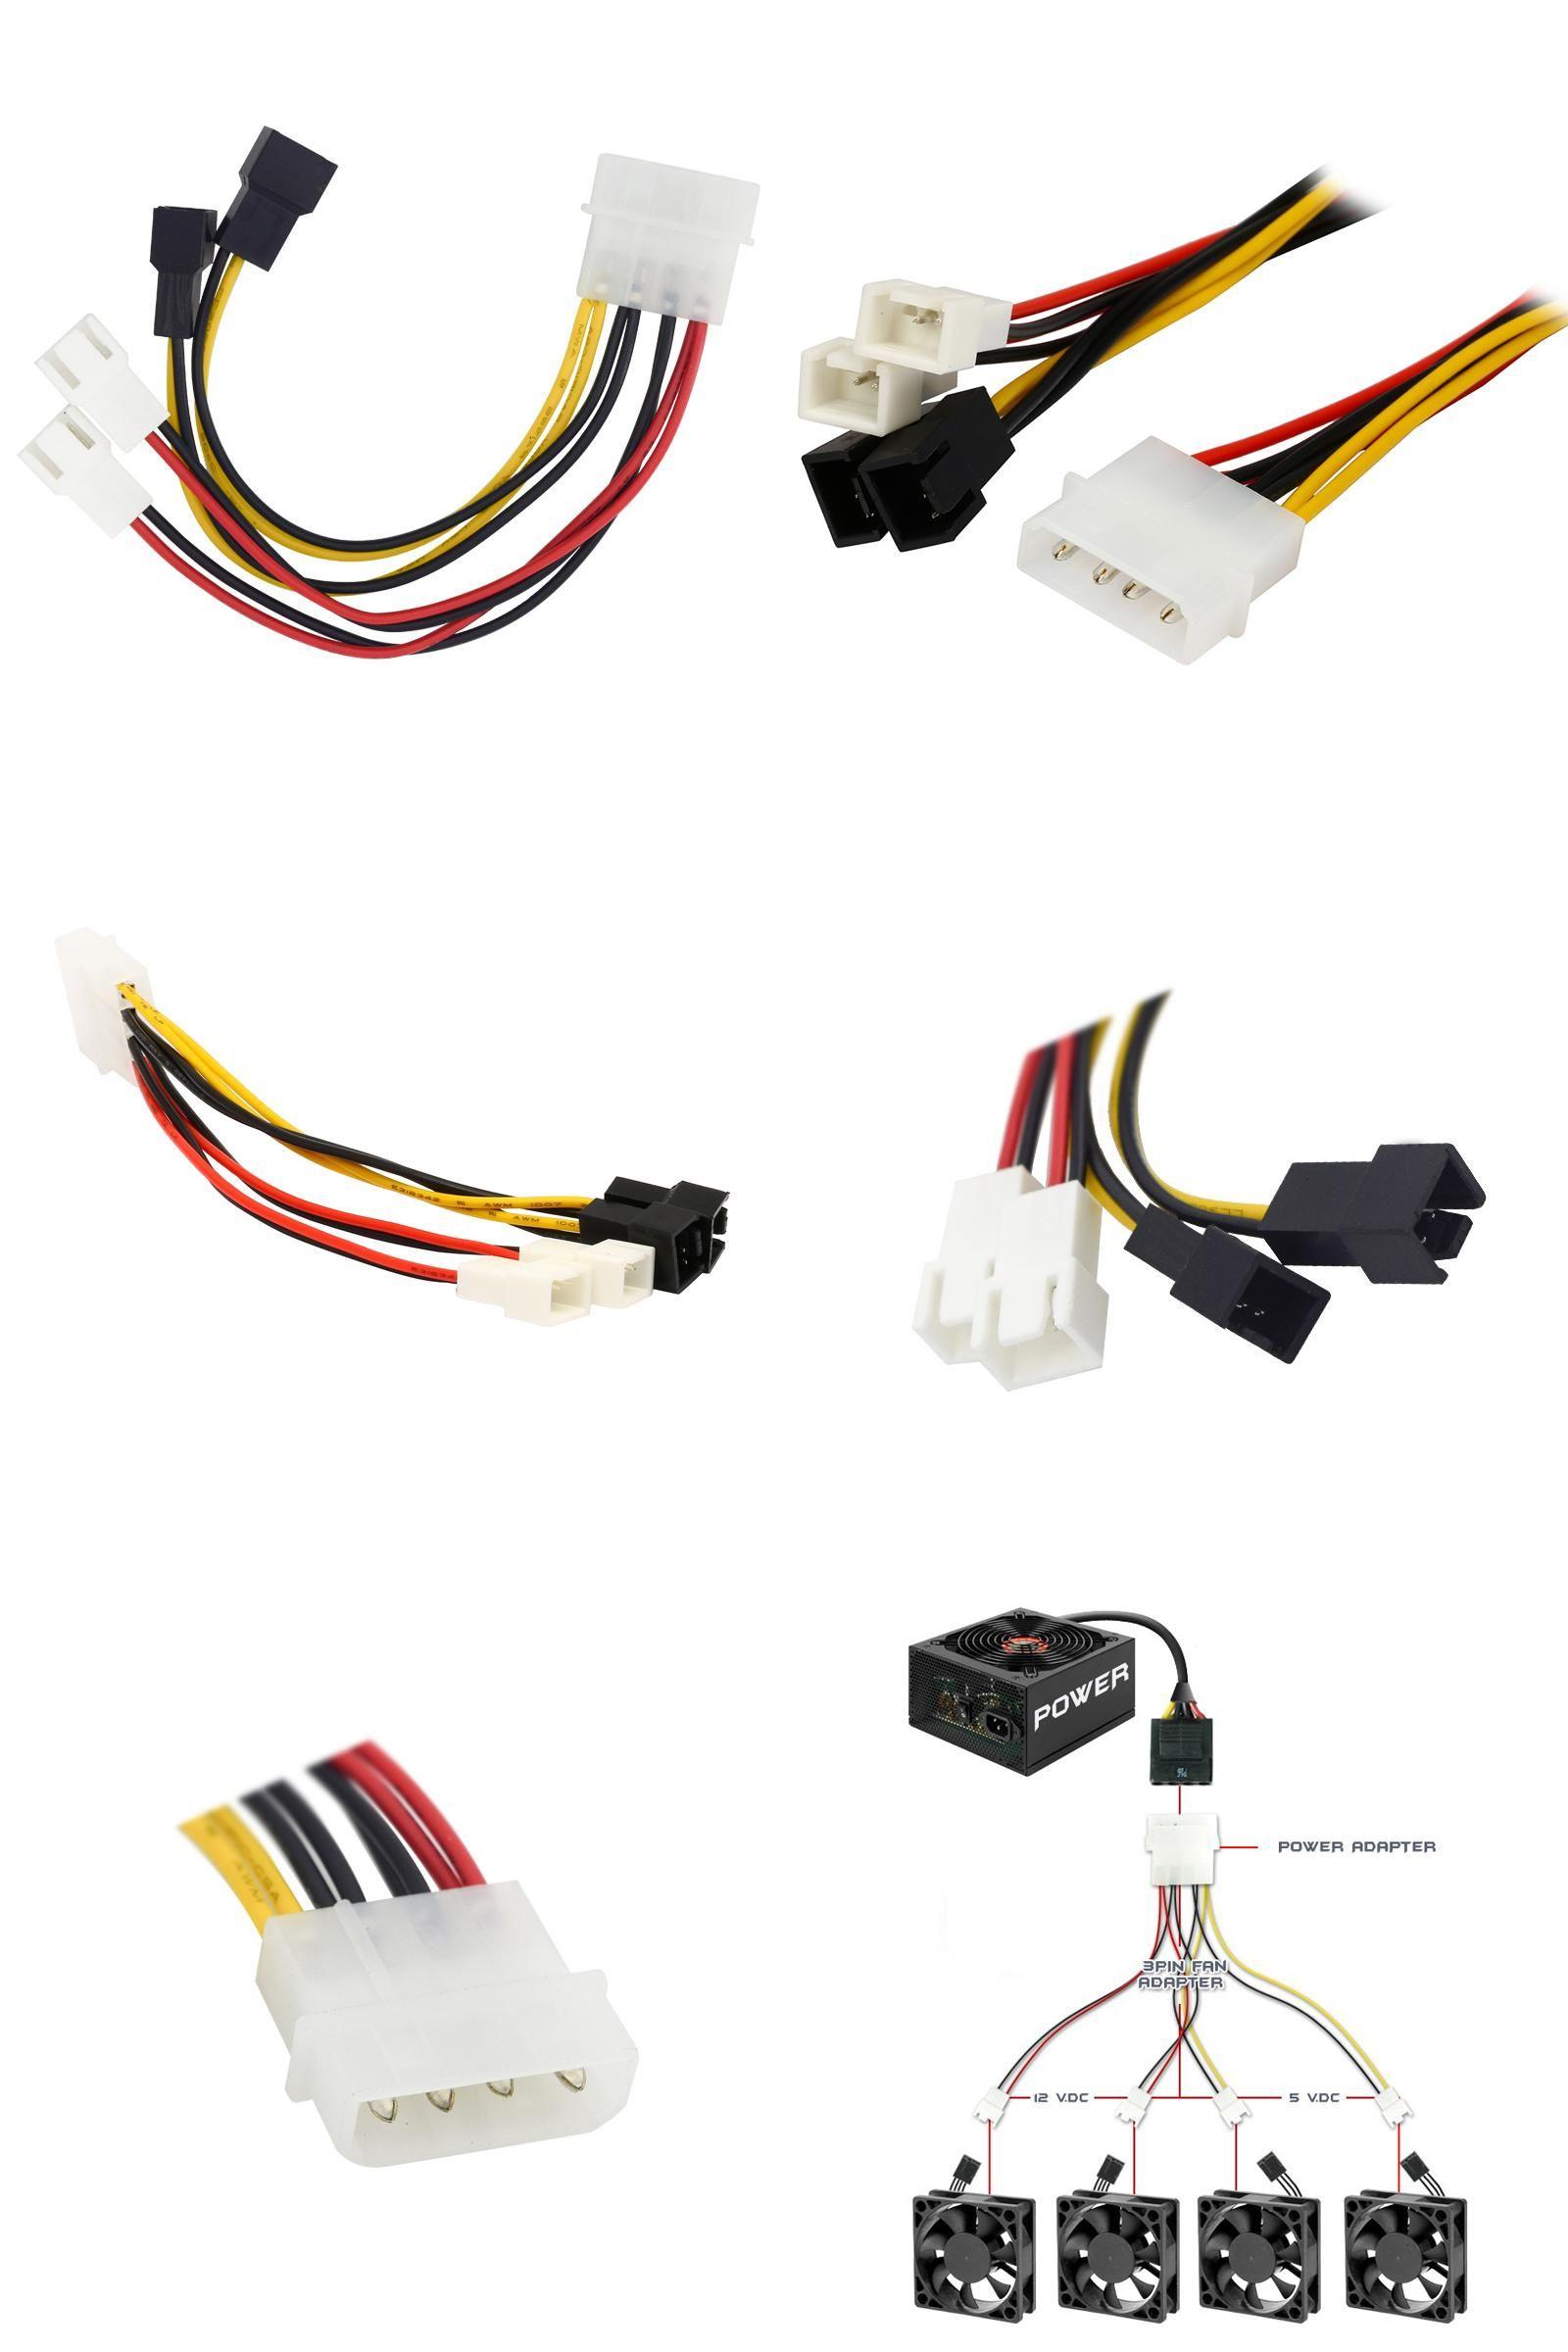 hight resolution of  visit to buy ide molex 4 pin to case cooling fan 3 pin tx3 multi fan out power adapter converter cable w speed reduction 2x5v 2x12v advertisement